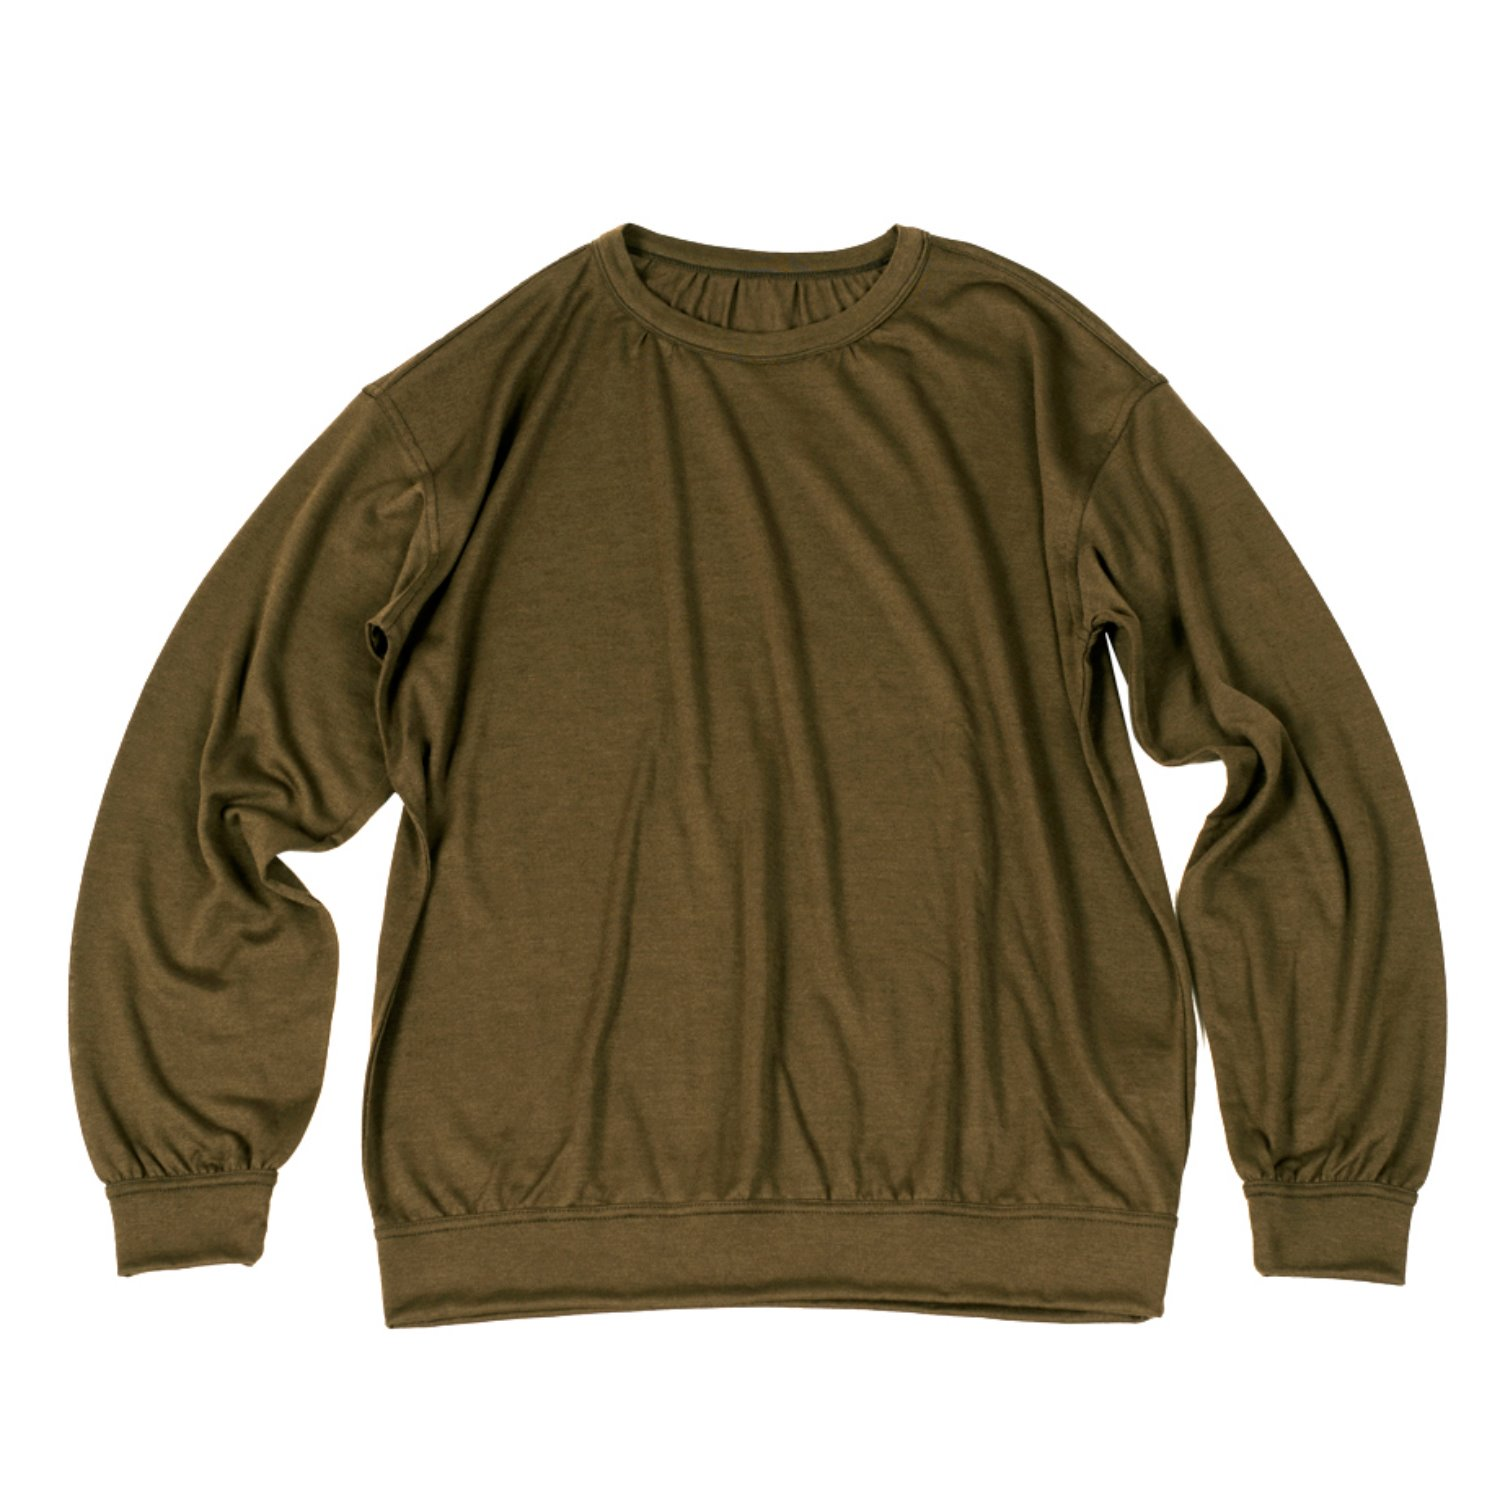 Corozo Makers Drape Knit Tee (Olive)